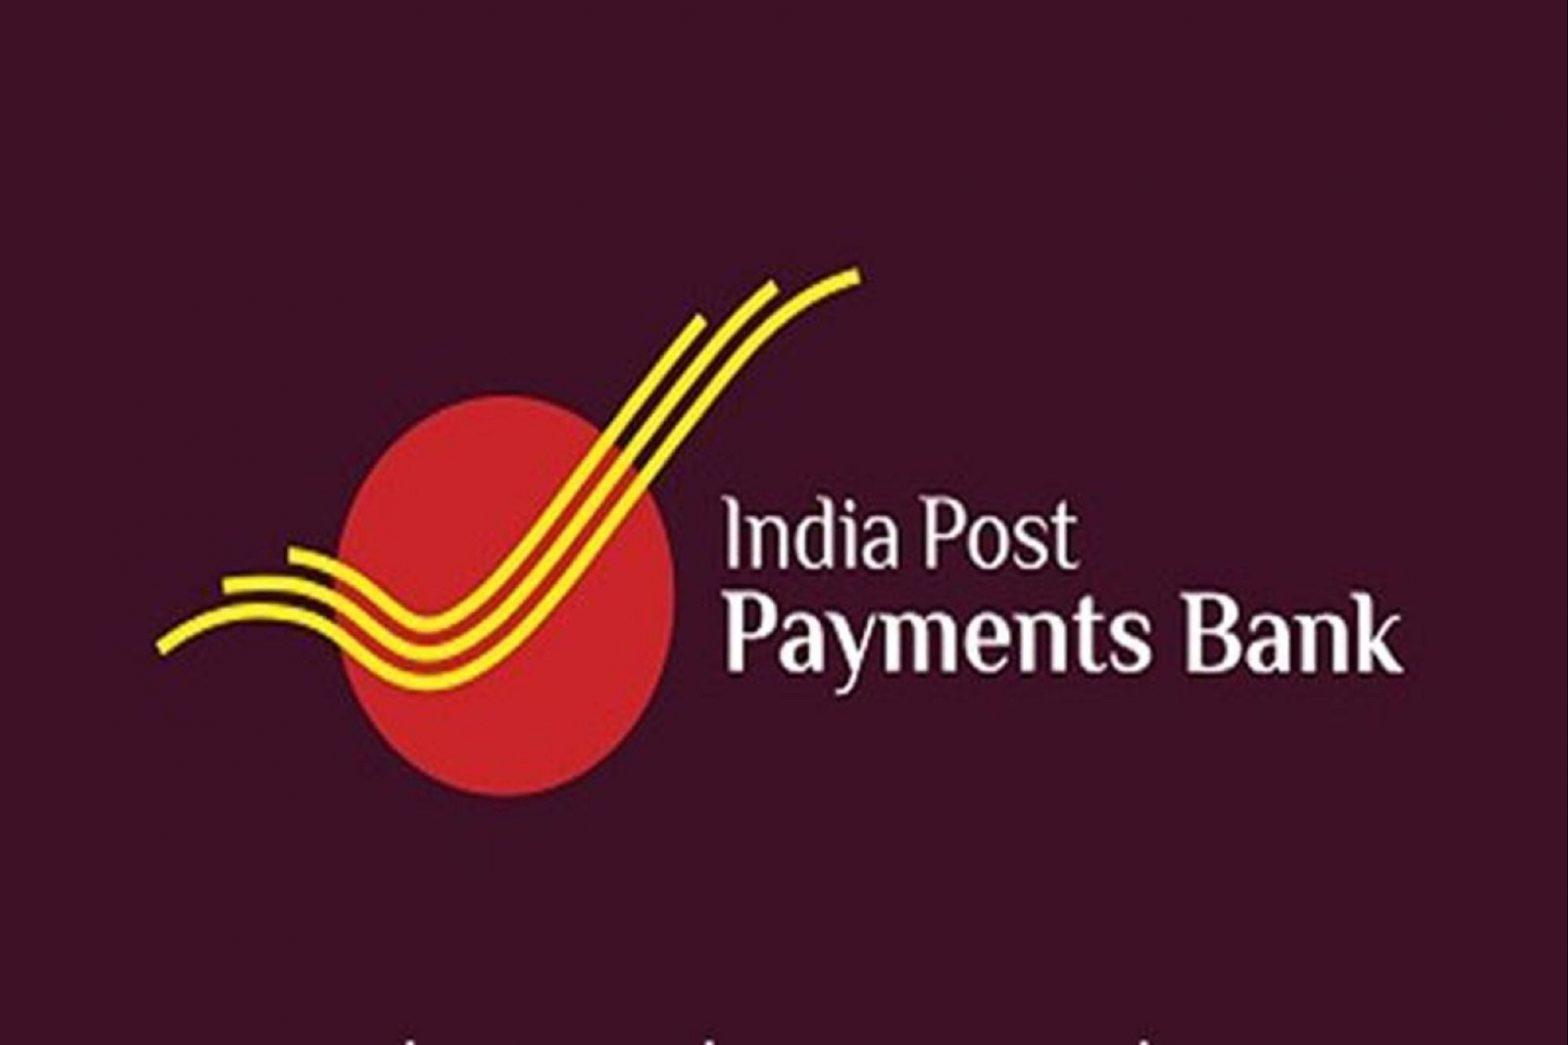 J Venkatramu appointed MD and CEO of India Post Payments Bank_40.1